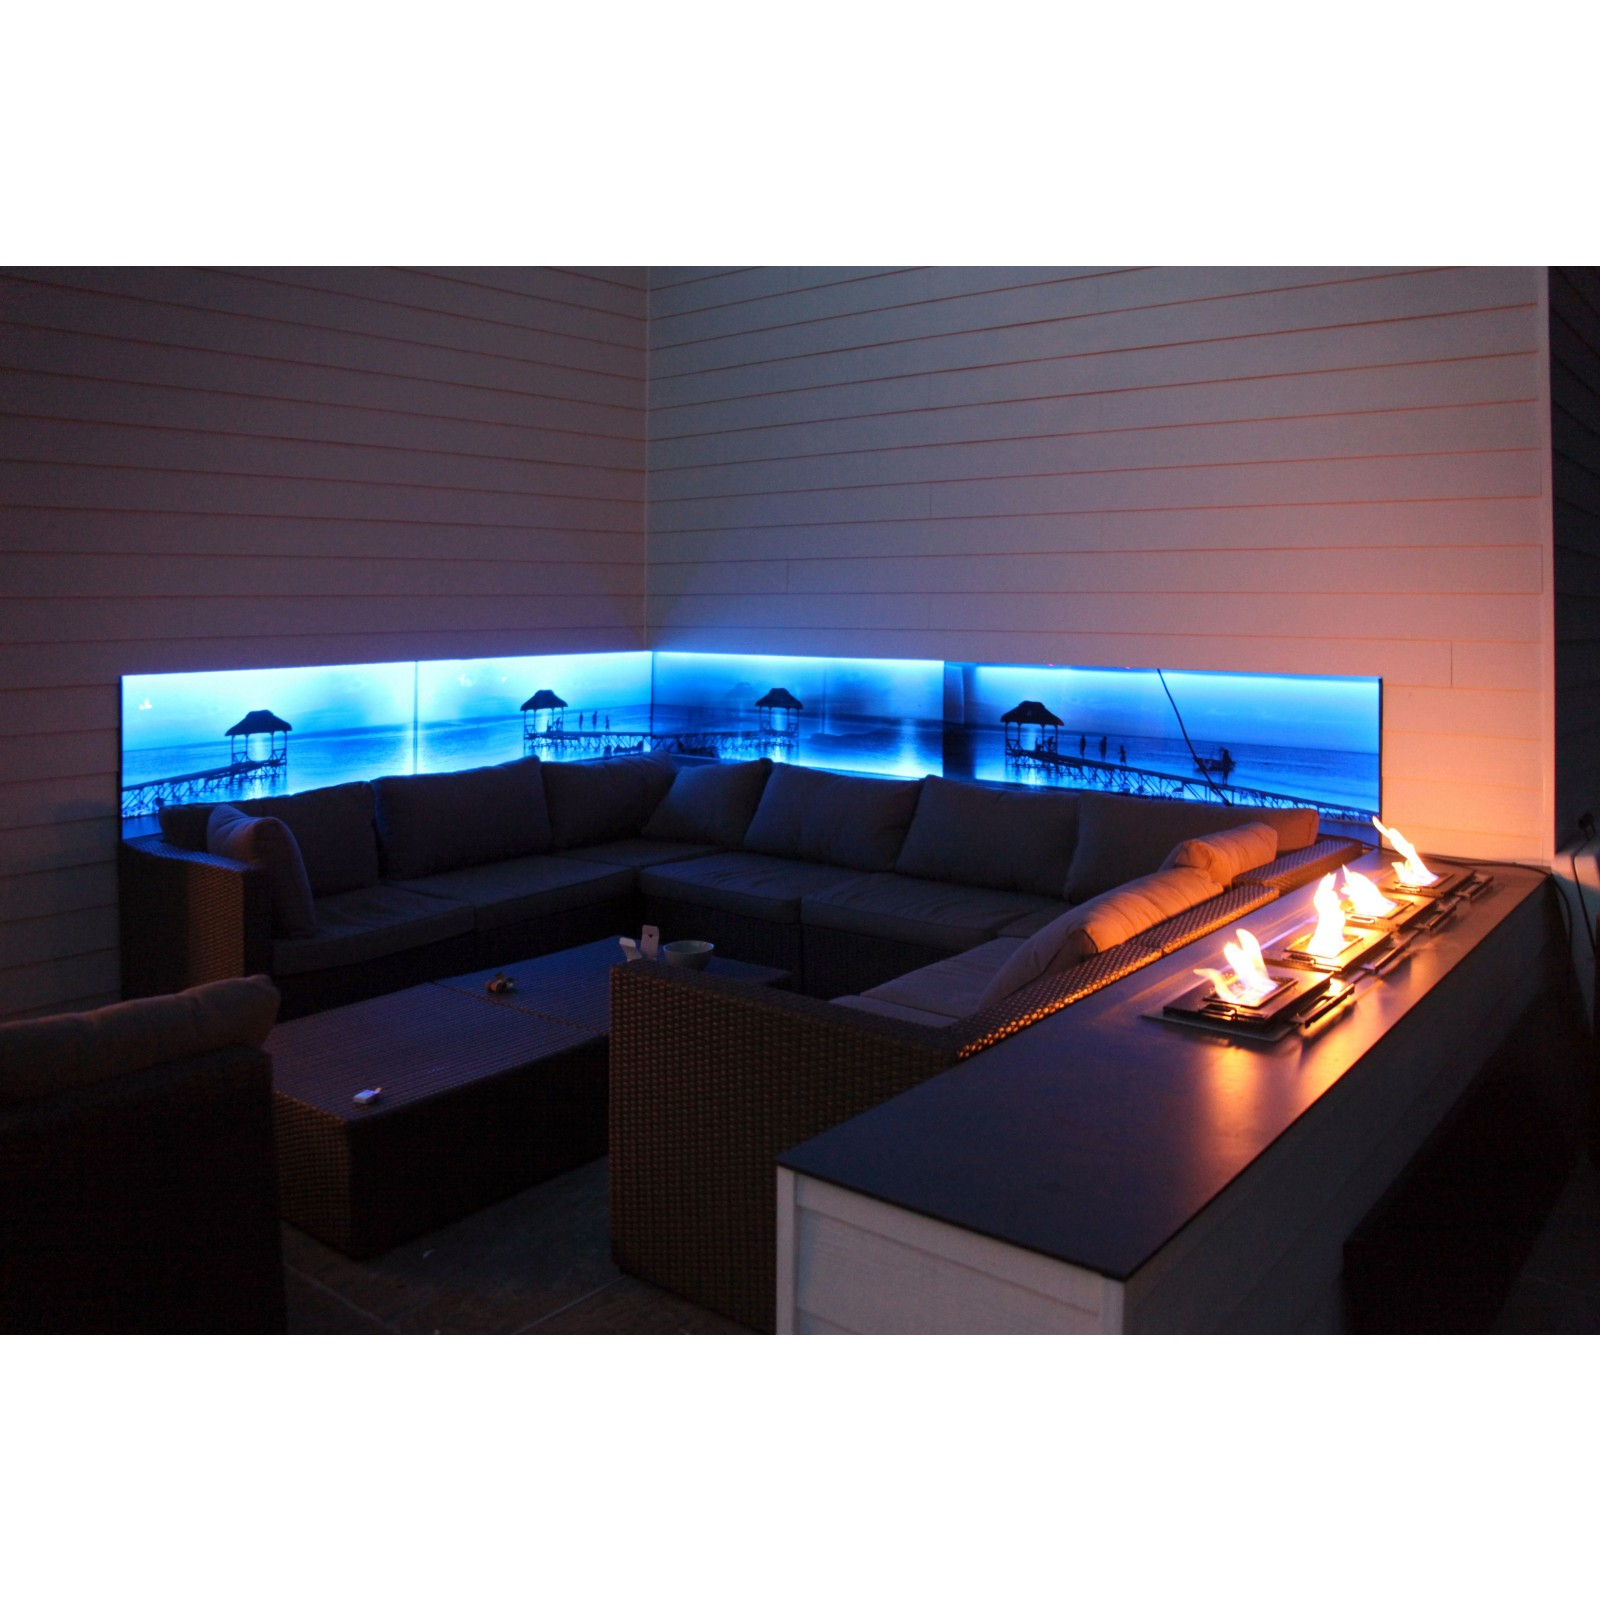 ruban flexible led rgb ip20 5m jb systems lsi 30rgb 5050 ip20 5m. Black Bedroom Furniture Sets. Home Design Ideas